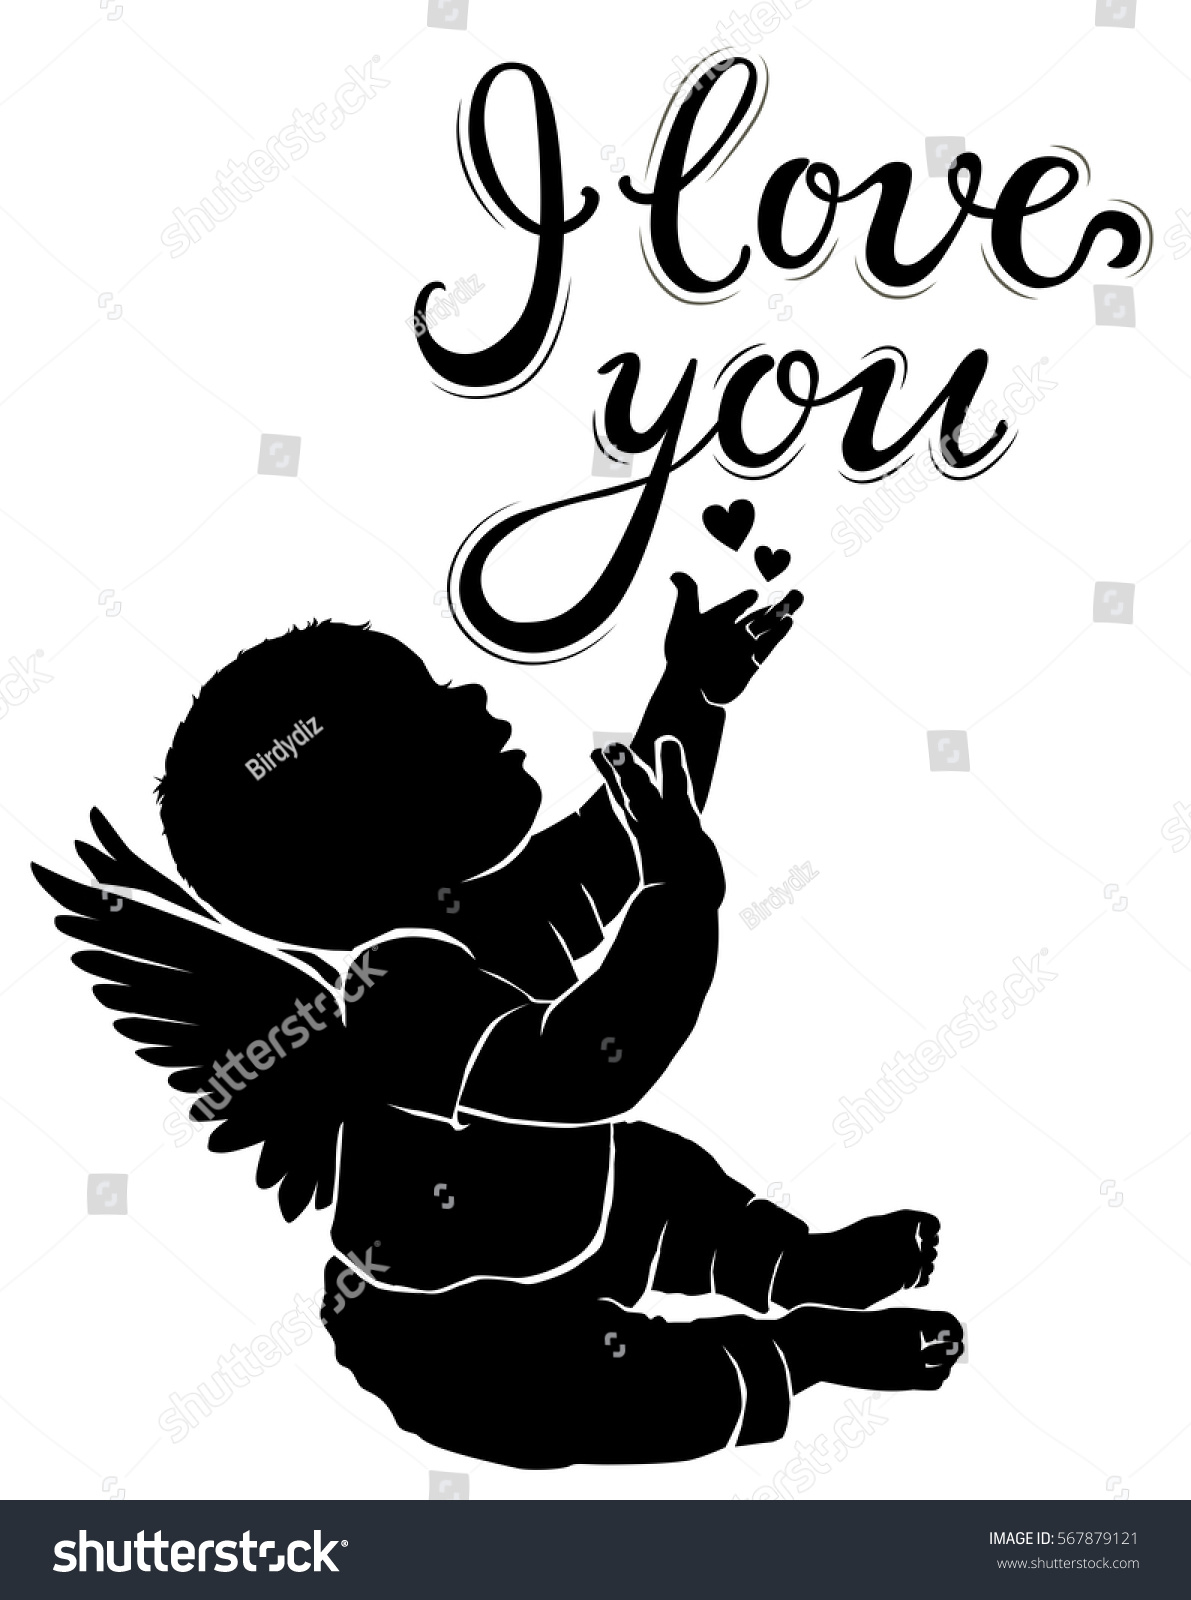 Baby Angel Svg : angel, Silhouette, Angel, Stock, Vector, (Royalty, Free), 567879121